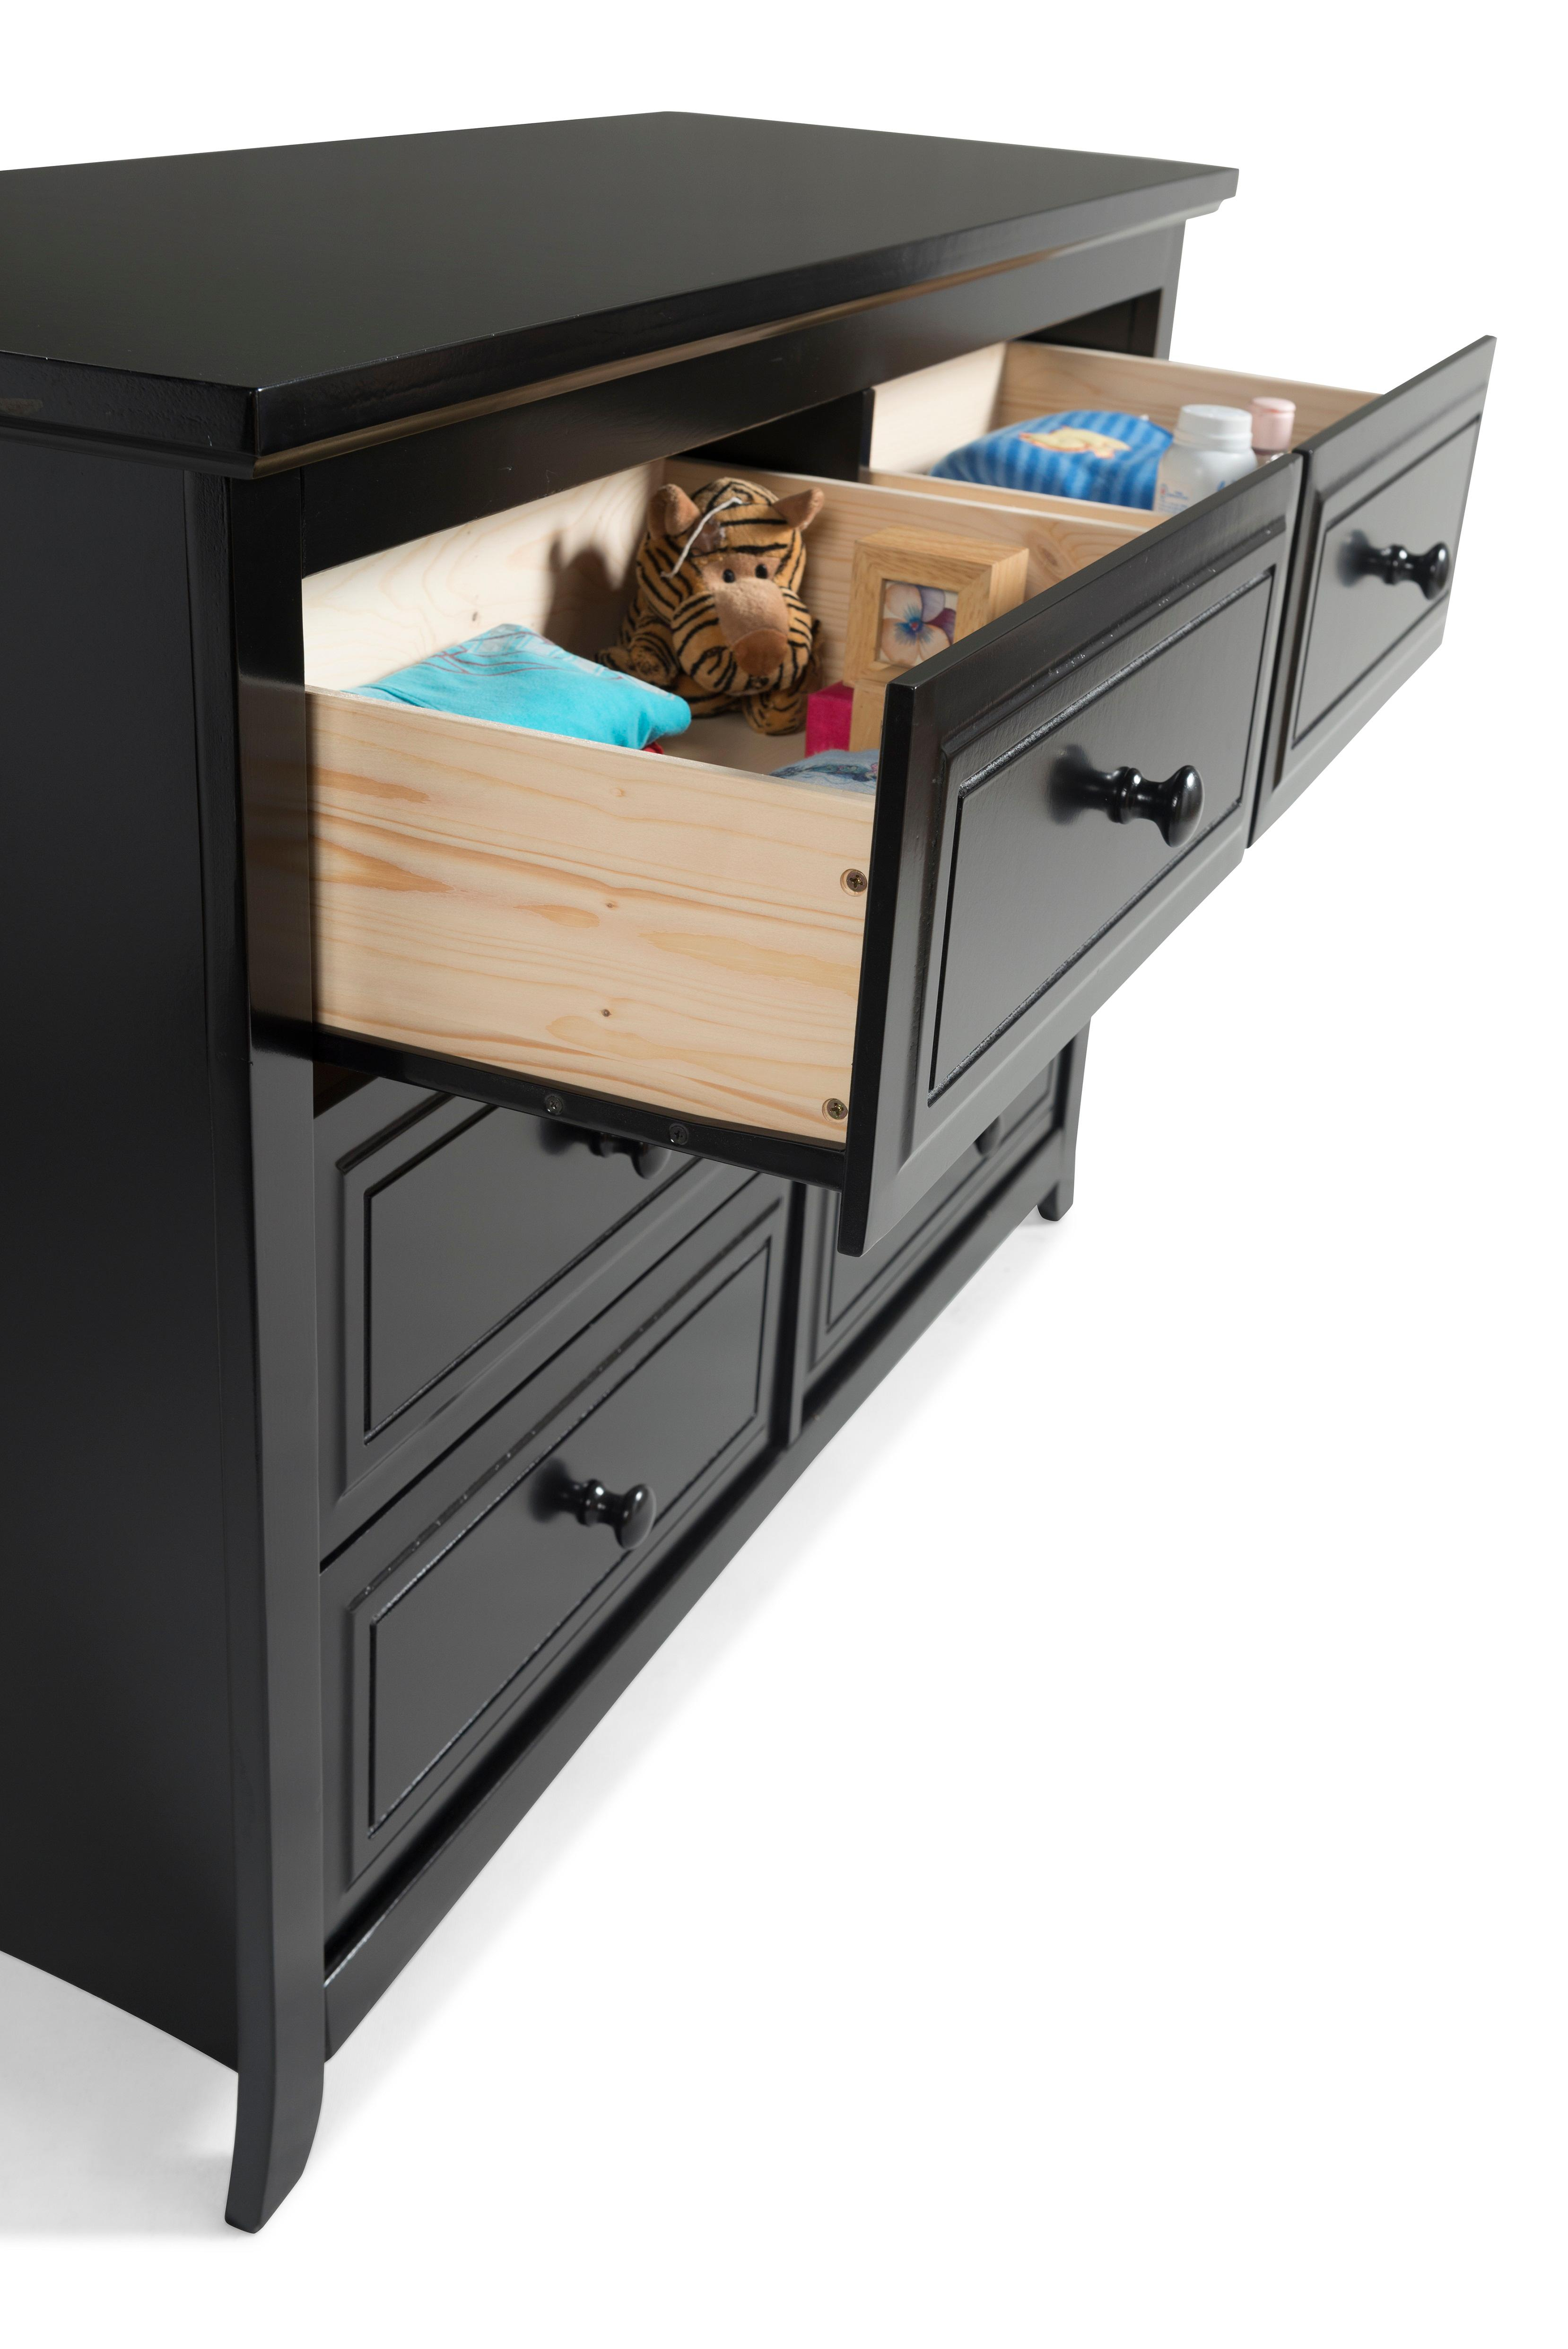 chest dresser drawer drawers adorable steel legs black rvs tots intense stainless extender kidsmill